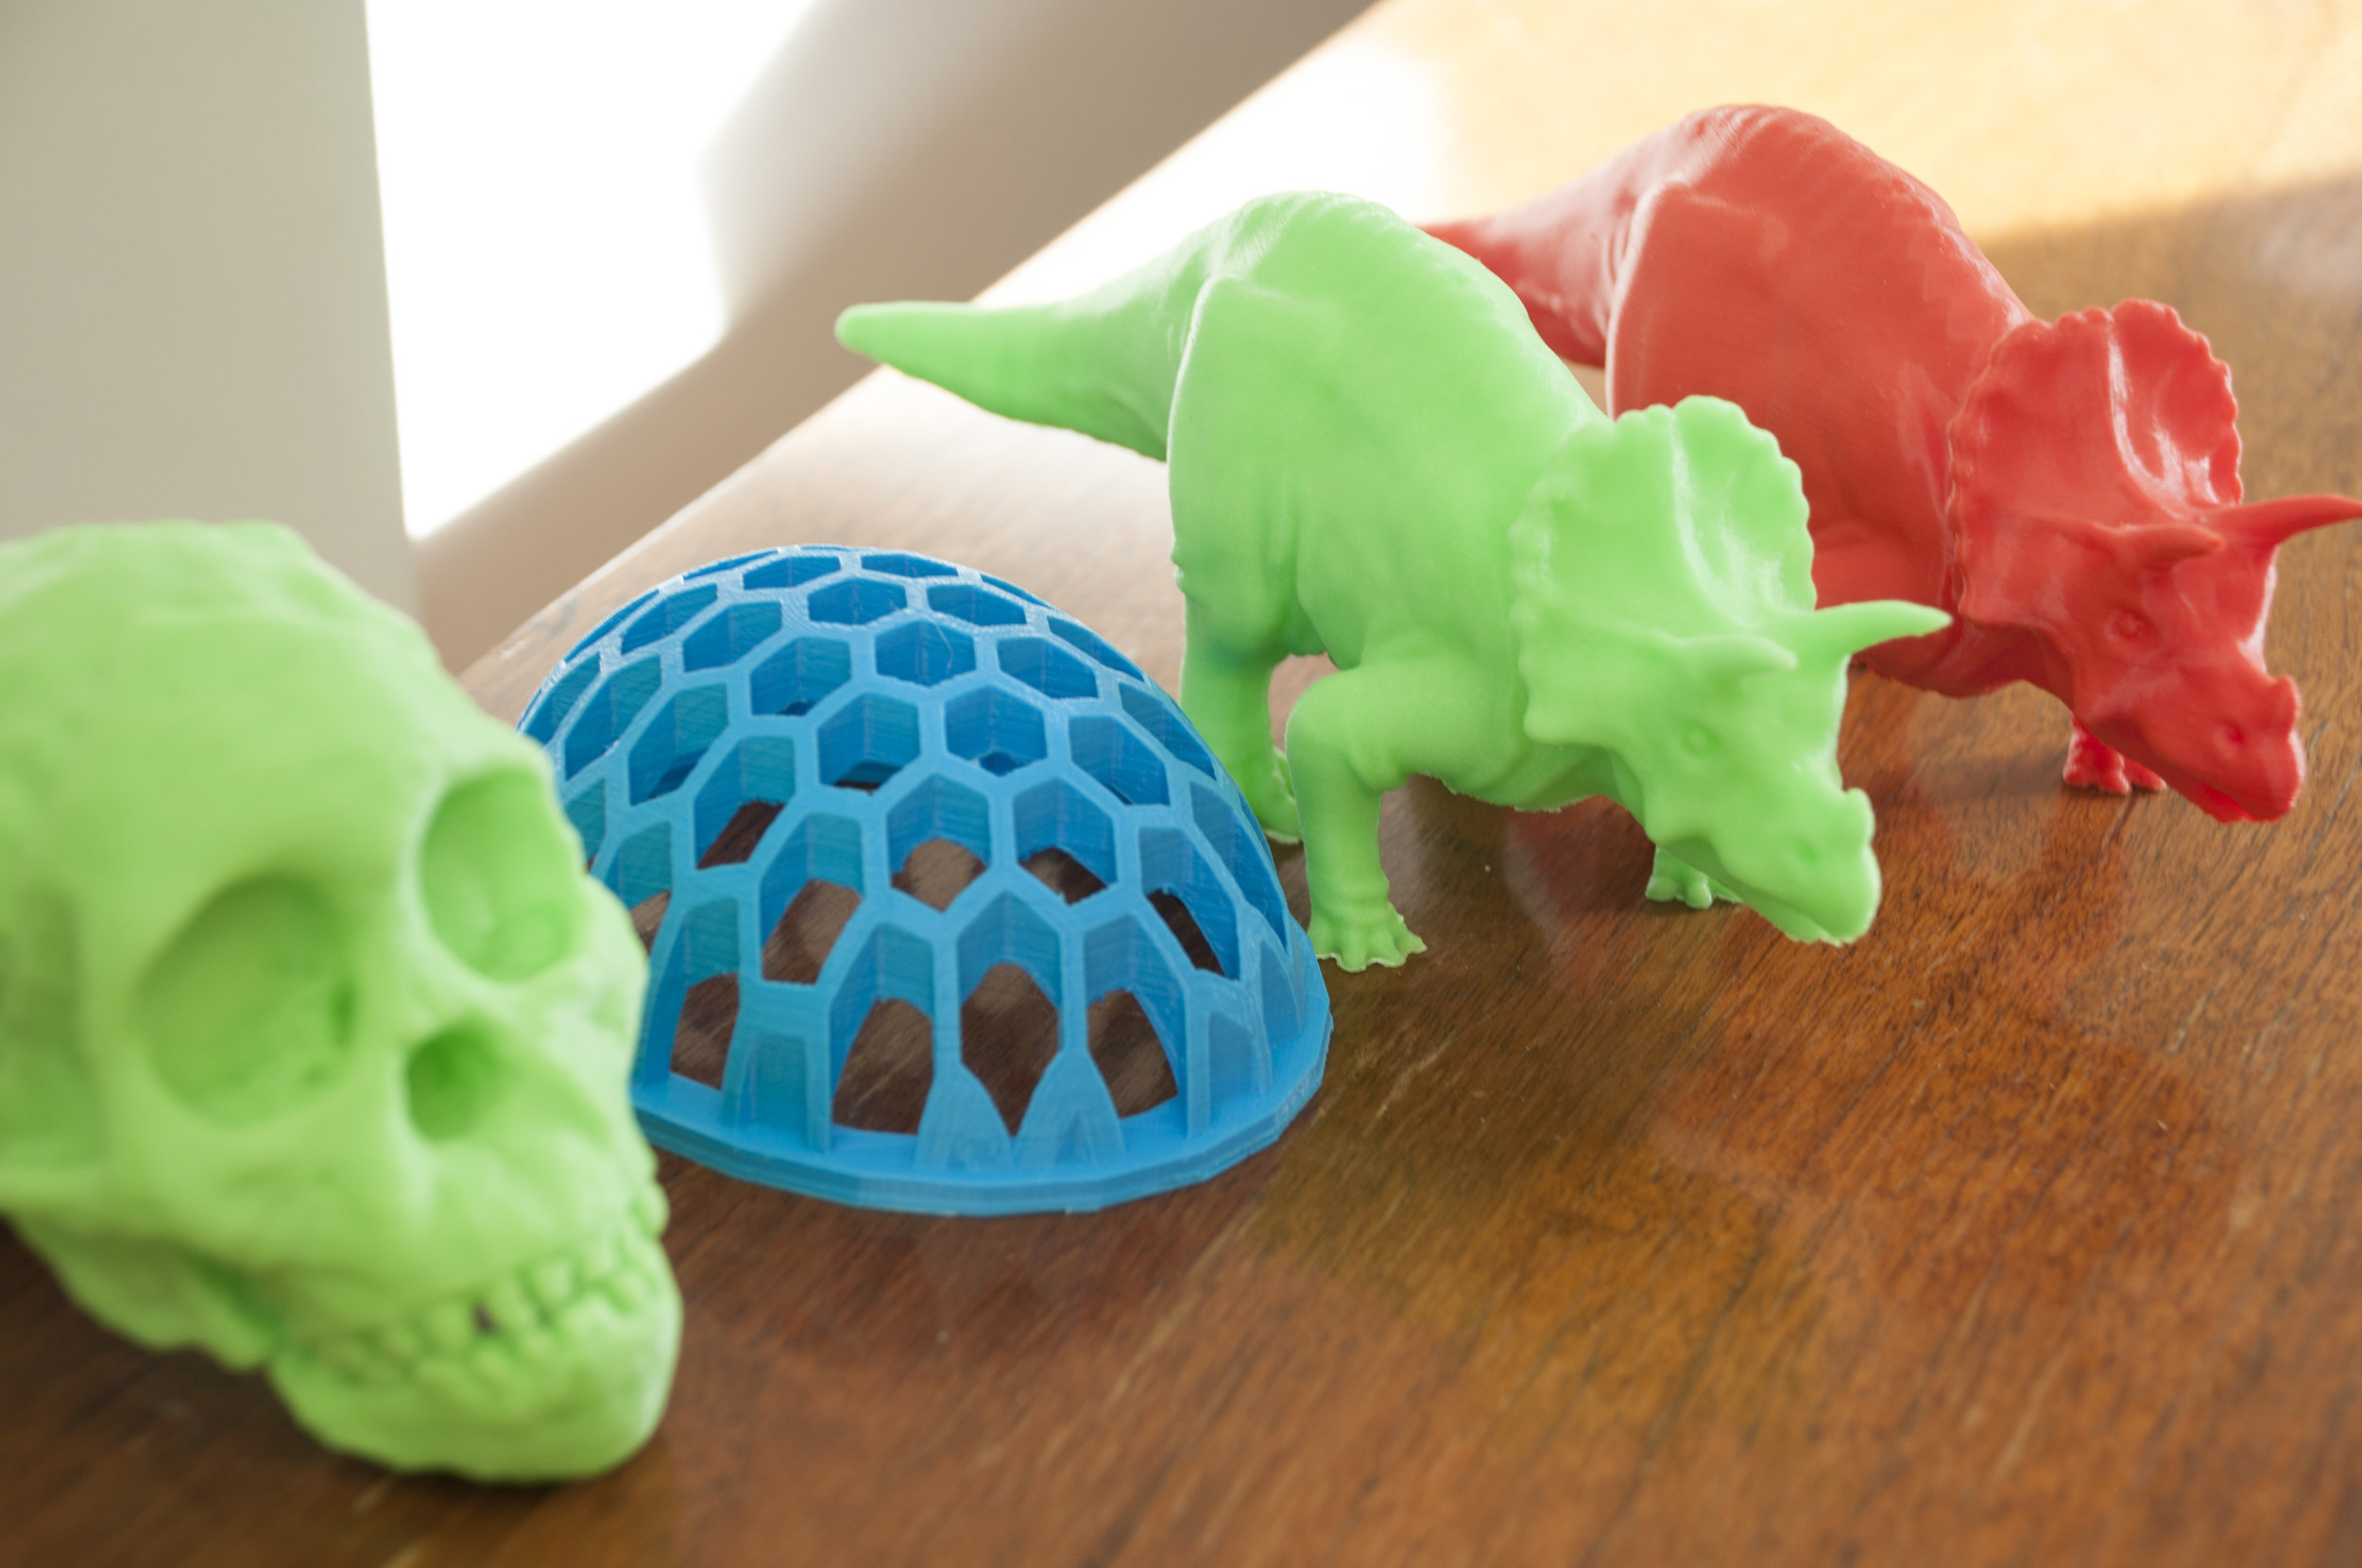 Edgewater Workbench in Chicago offers 3D printing services.